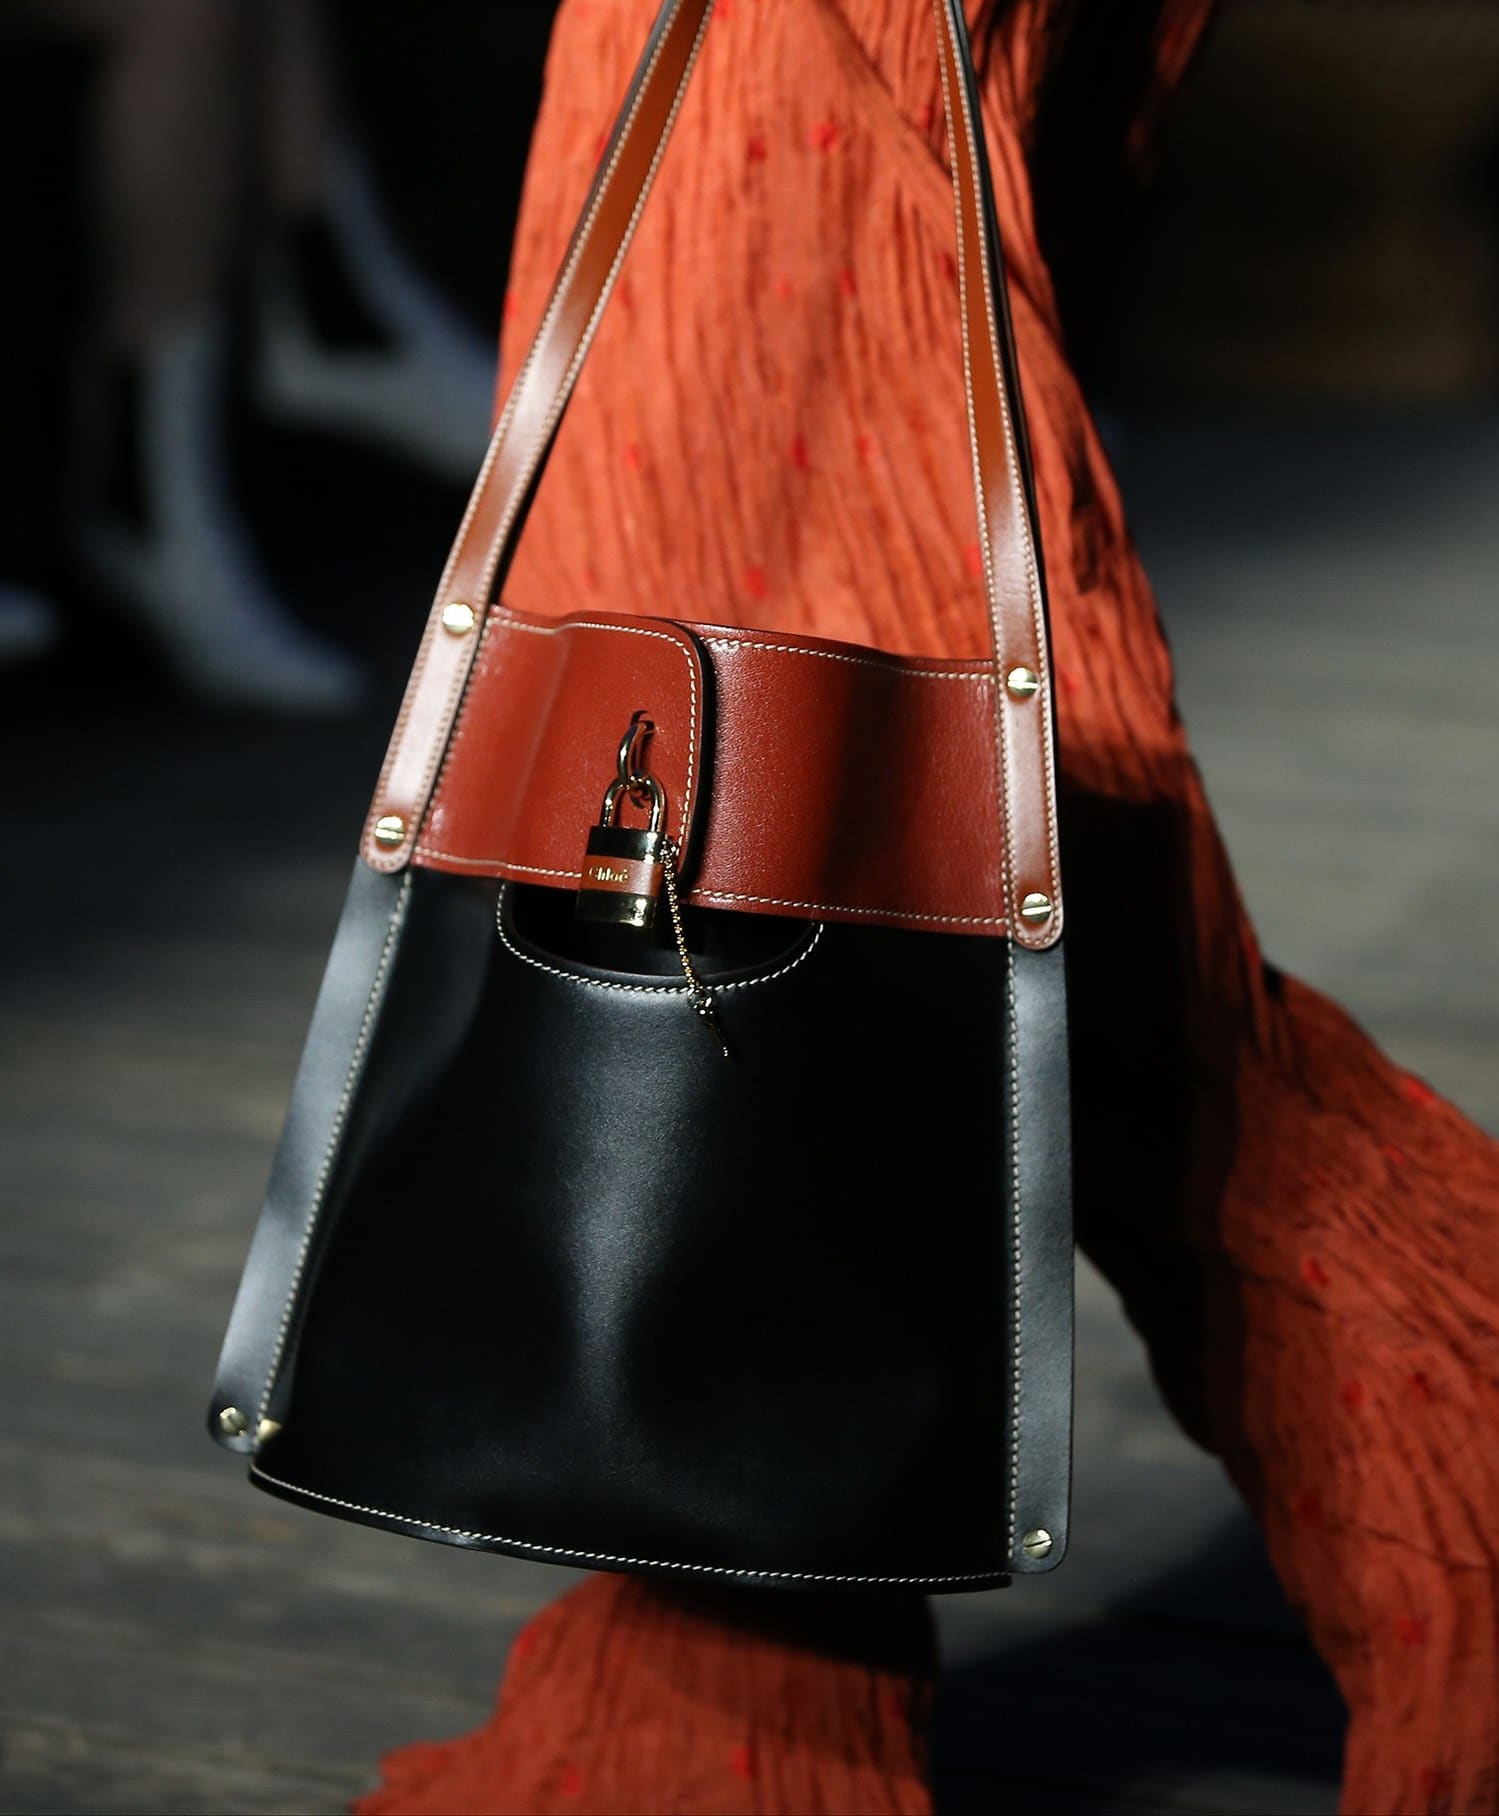 Chloe Resort 2020 Runway Bag Collection